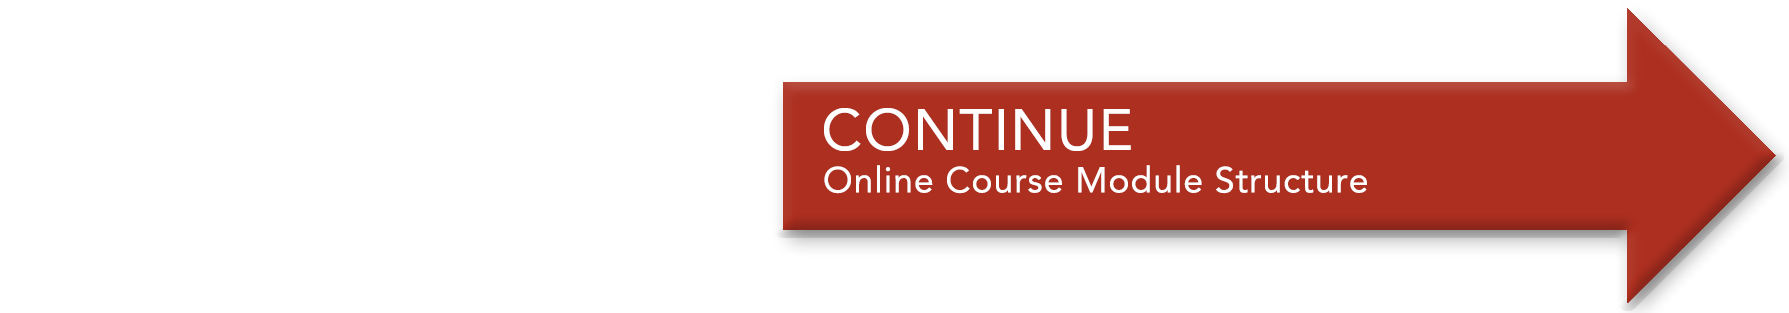 Continue to Online Course Module Structure